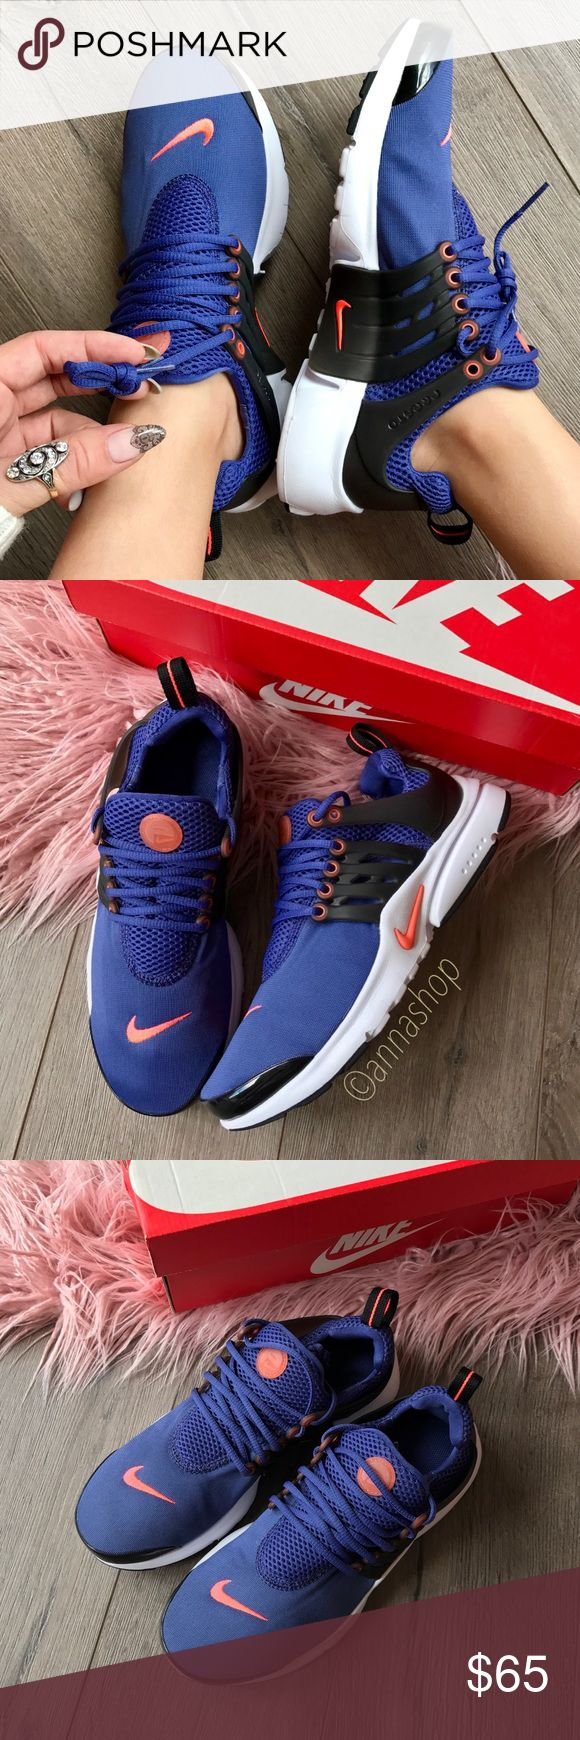 NWT Nike Air Presto 🌏 Brand new with box, price is firm. Want a shoe that has all the timelessness and comfort of your favorite T-shirt? Look no further than the Nike Air Presto. With a molded lacing component and comfortable stretch-mesh upper, you'll have support and flexibility where you need them most. The Phylon™ midsole and Air-Sole® unit add lightweight cushioning for all of your everyday activities.size 5Y-Women's 6.5. Size 6Y-Women's 7.5 Nike Shoes Sneakers